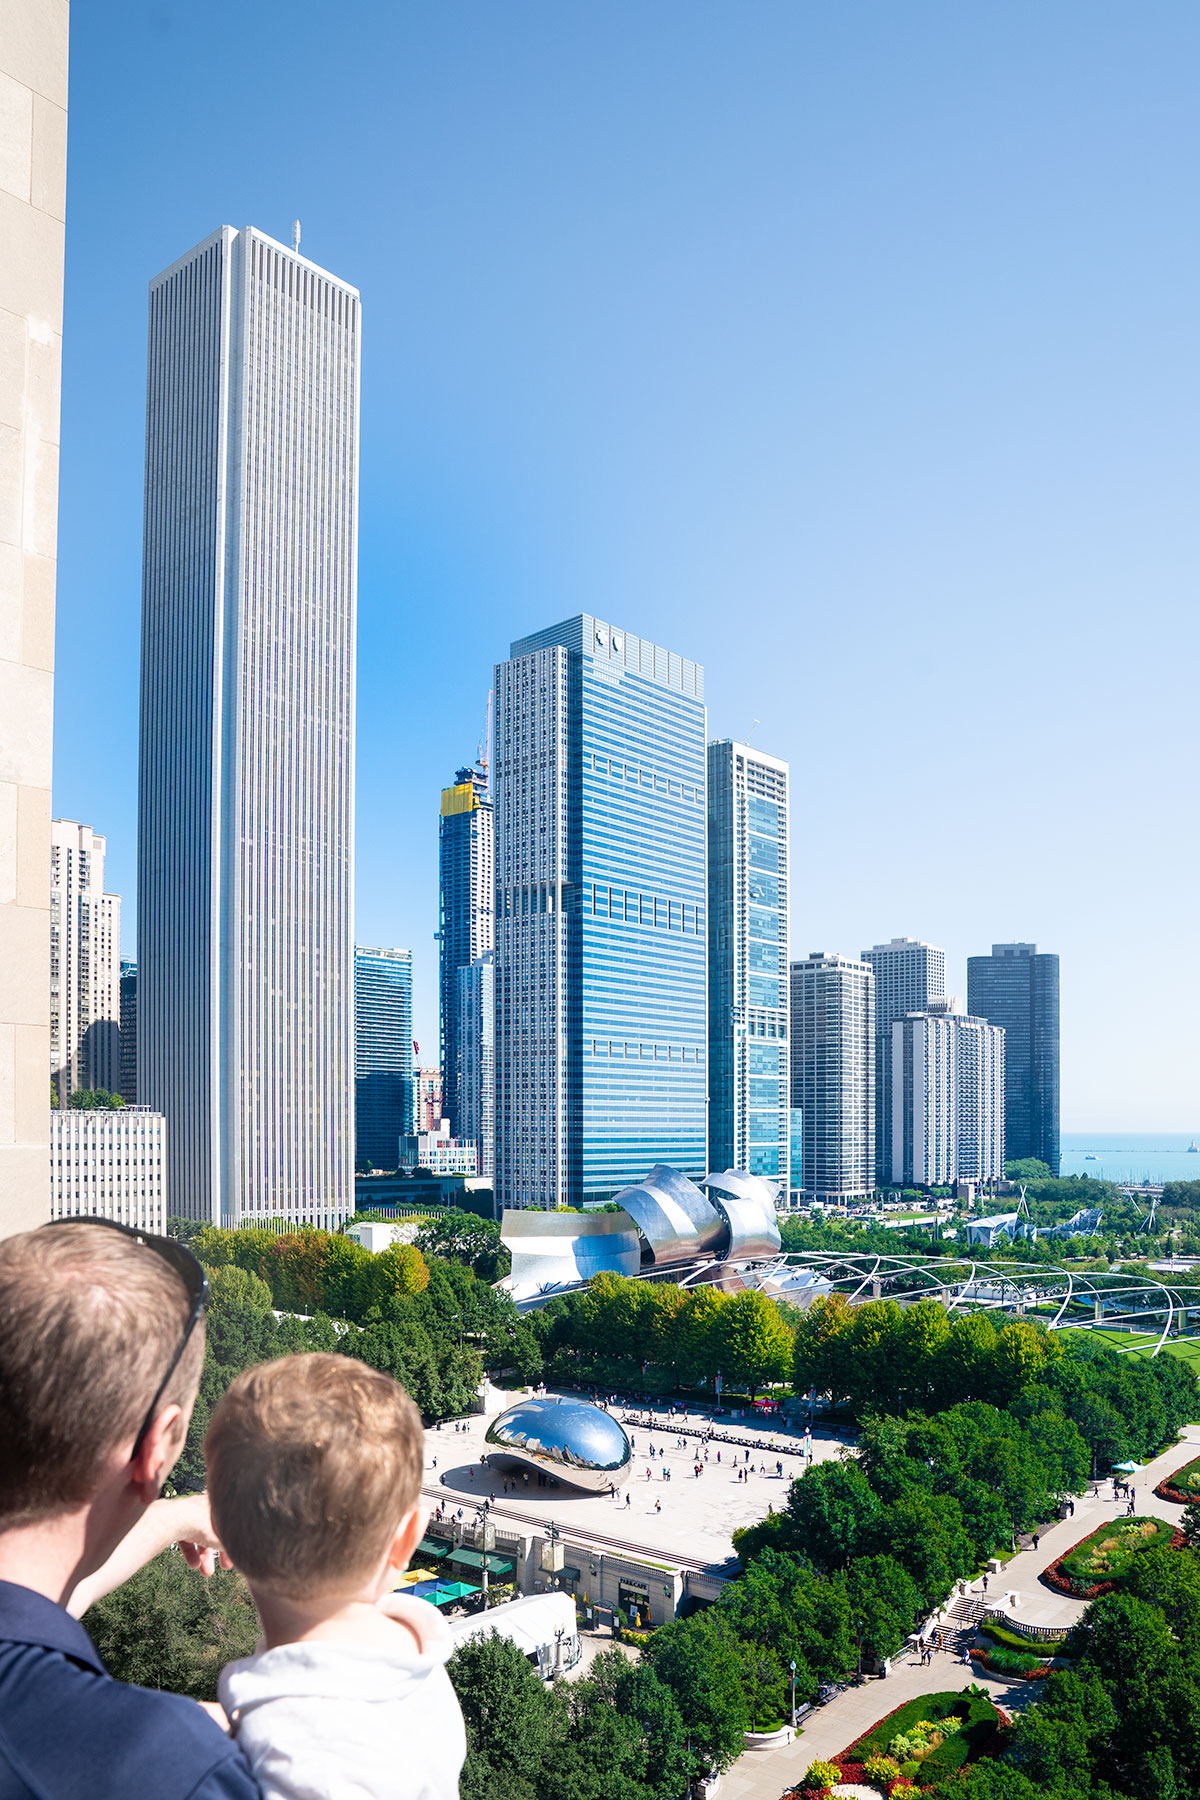 Cindys-Rooftop-Chicago-Skyline-View